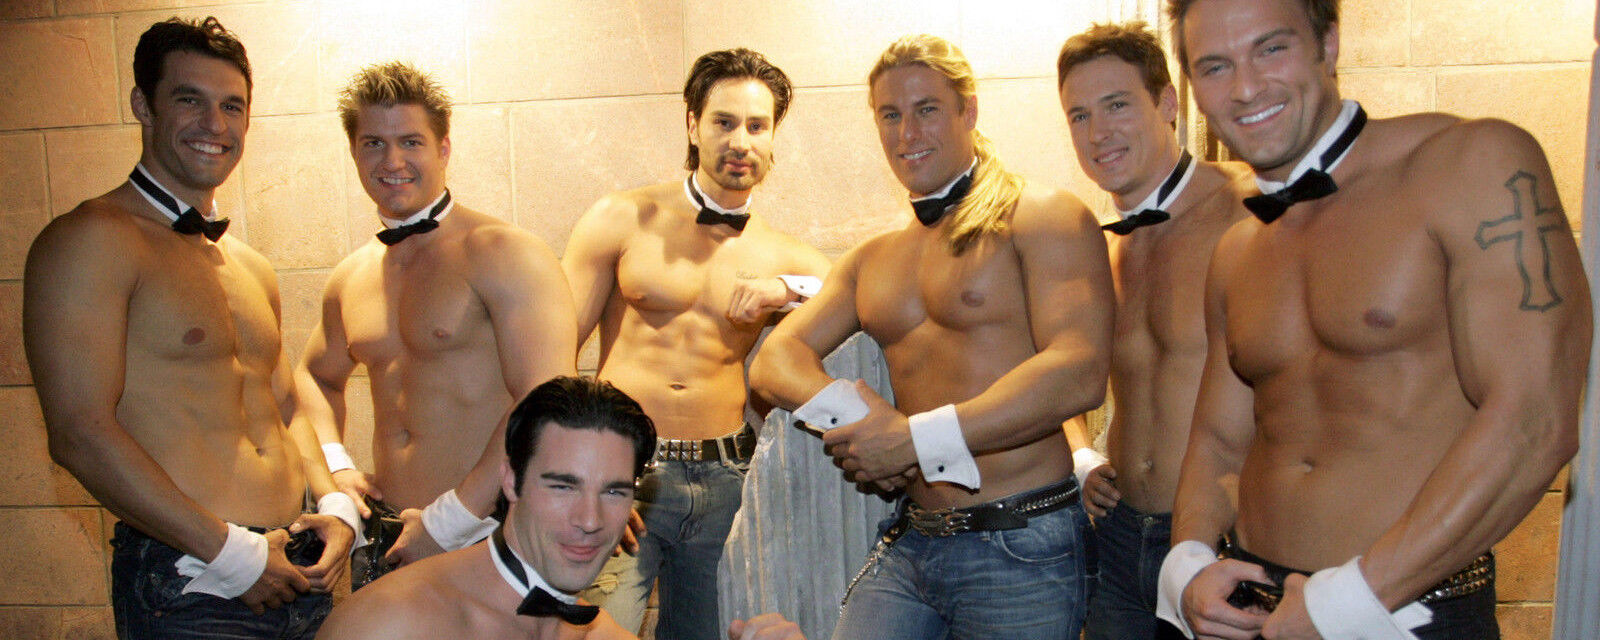 Chippendales About Last Night Tour Tickets (18+ Event)